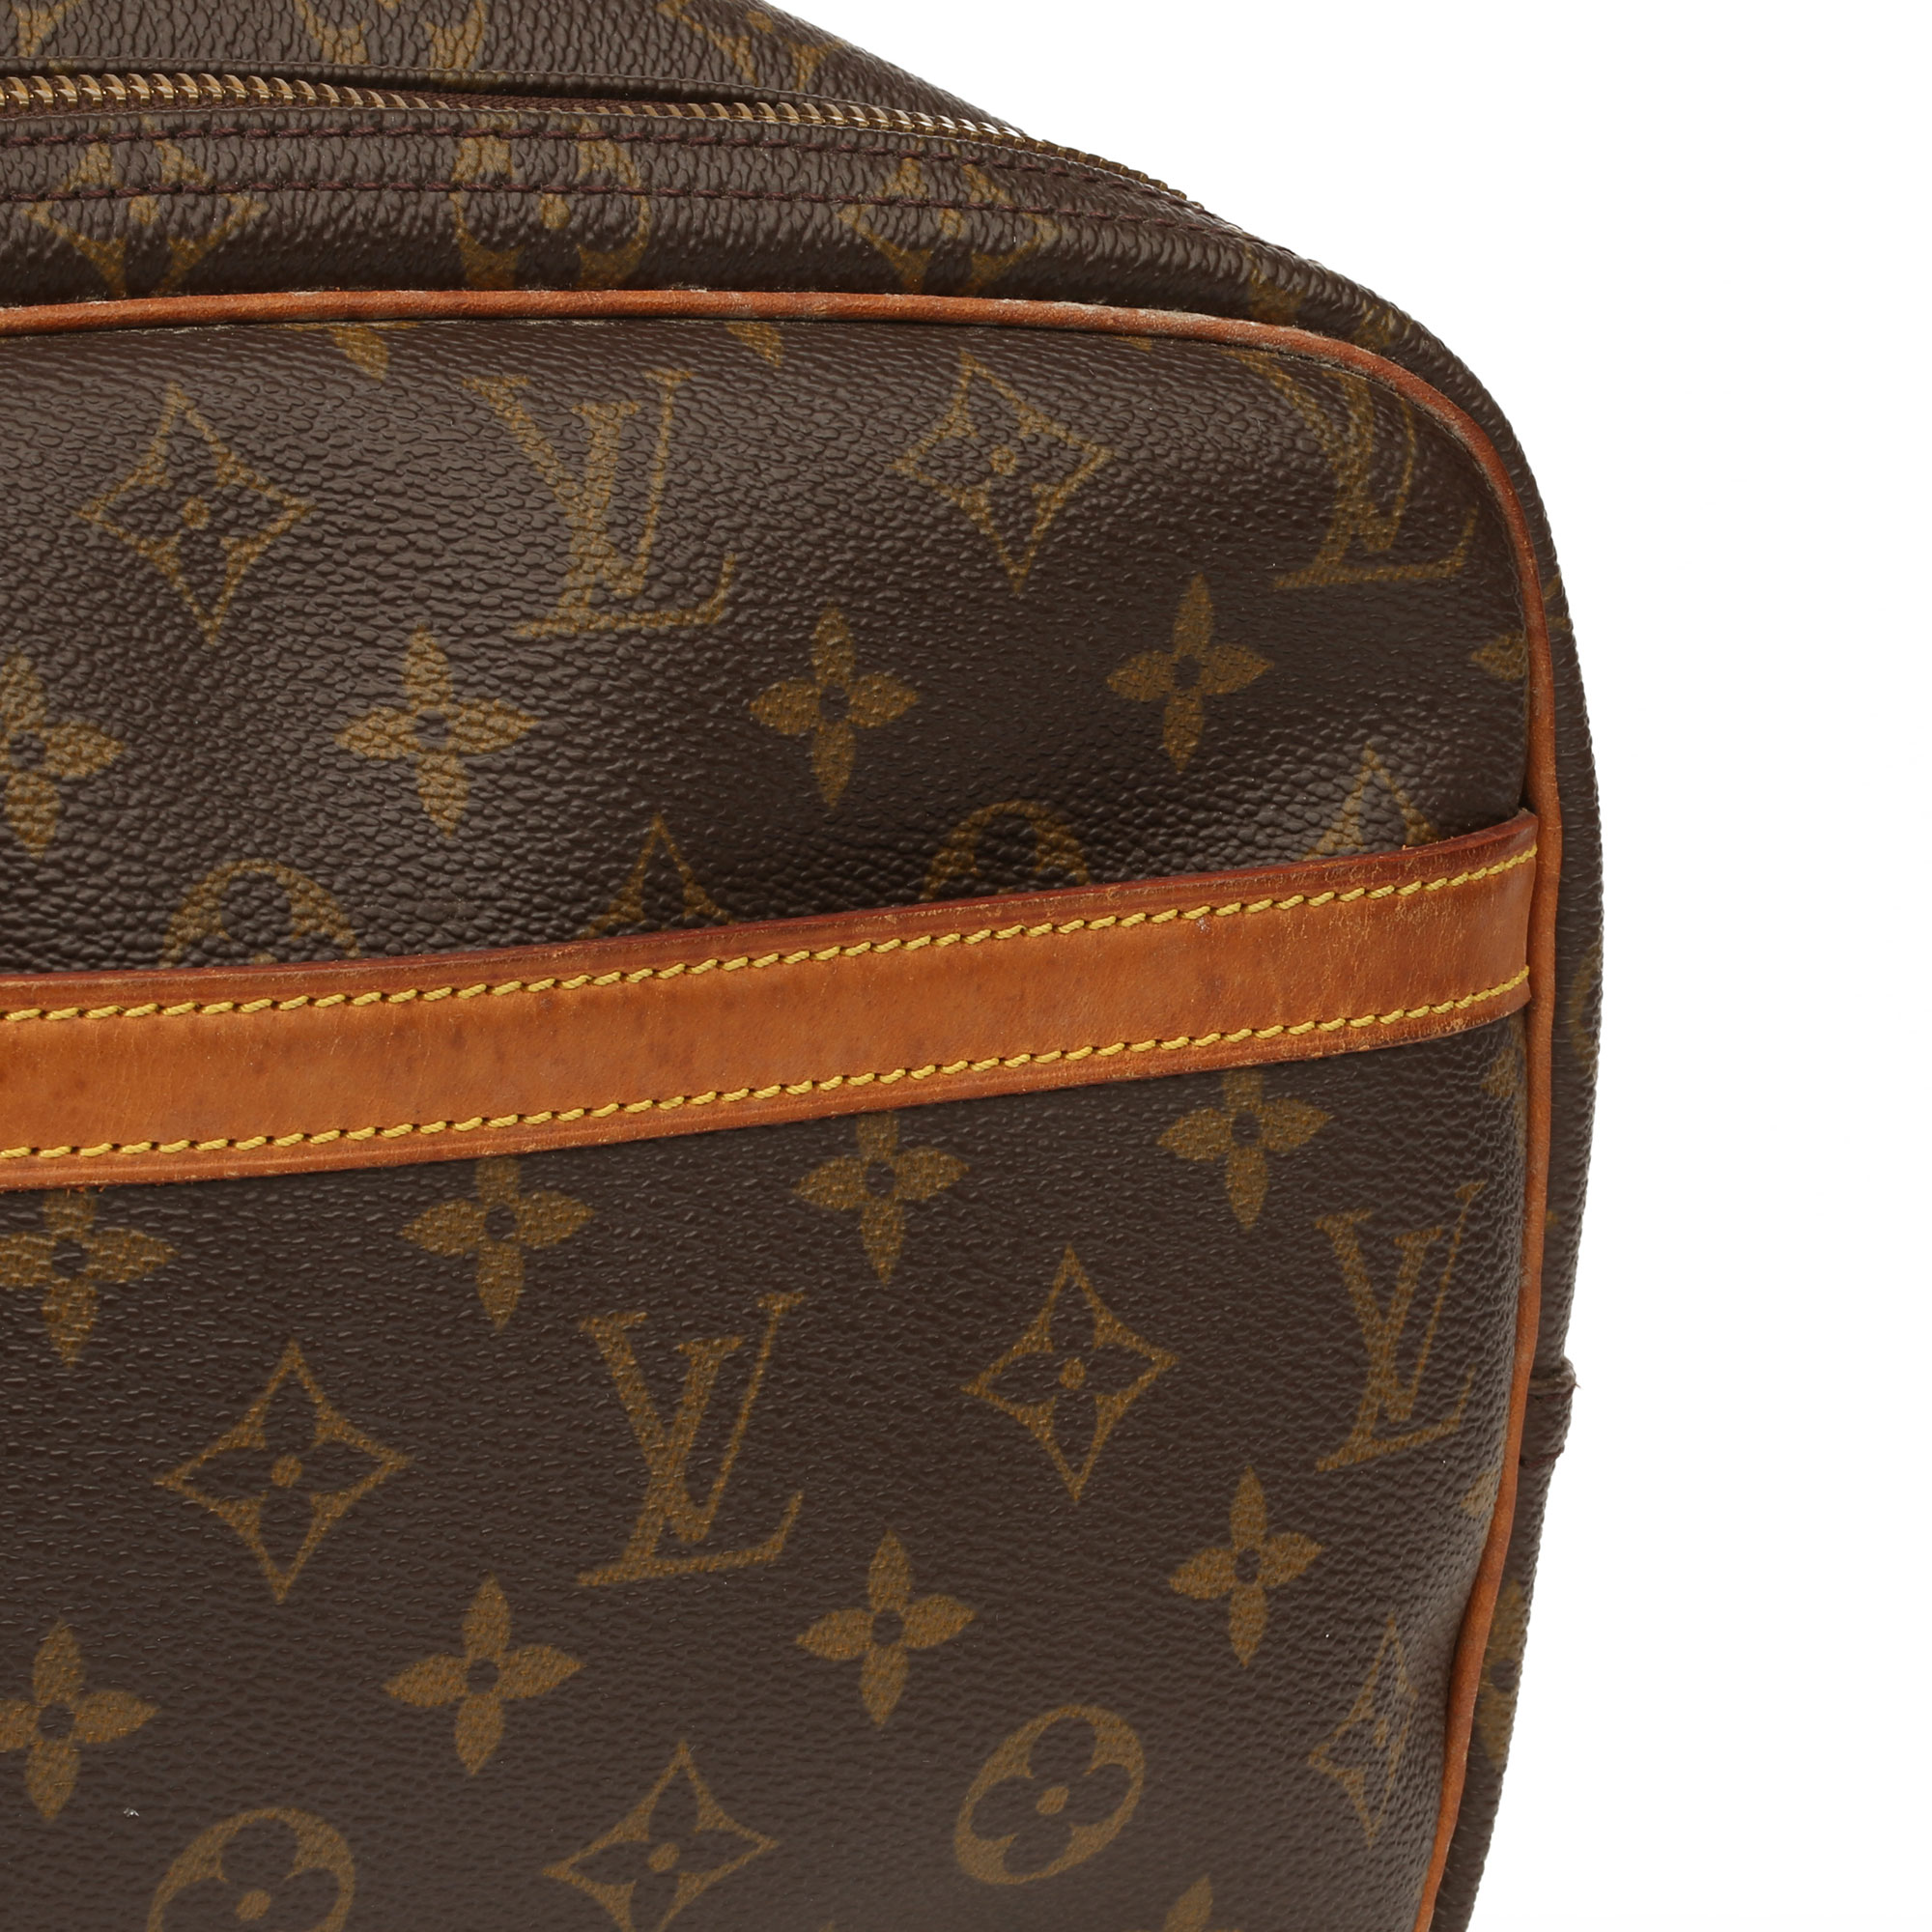 Louis Vuitton Brown Monogram Coated Canvas Vintage Reporter PM - Image 7 of 11